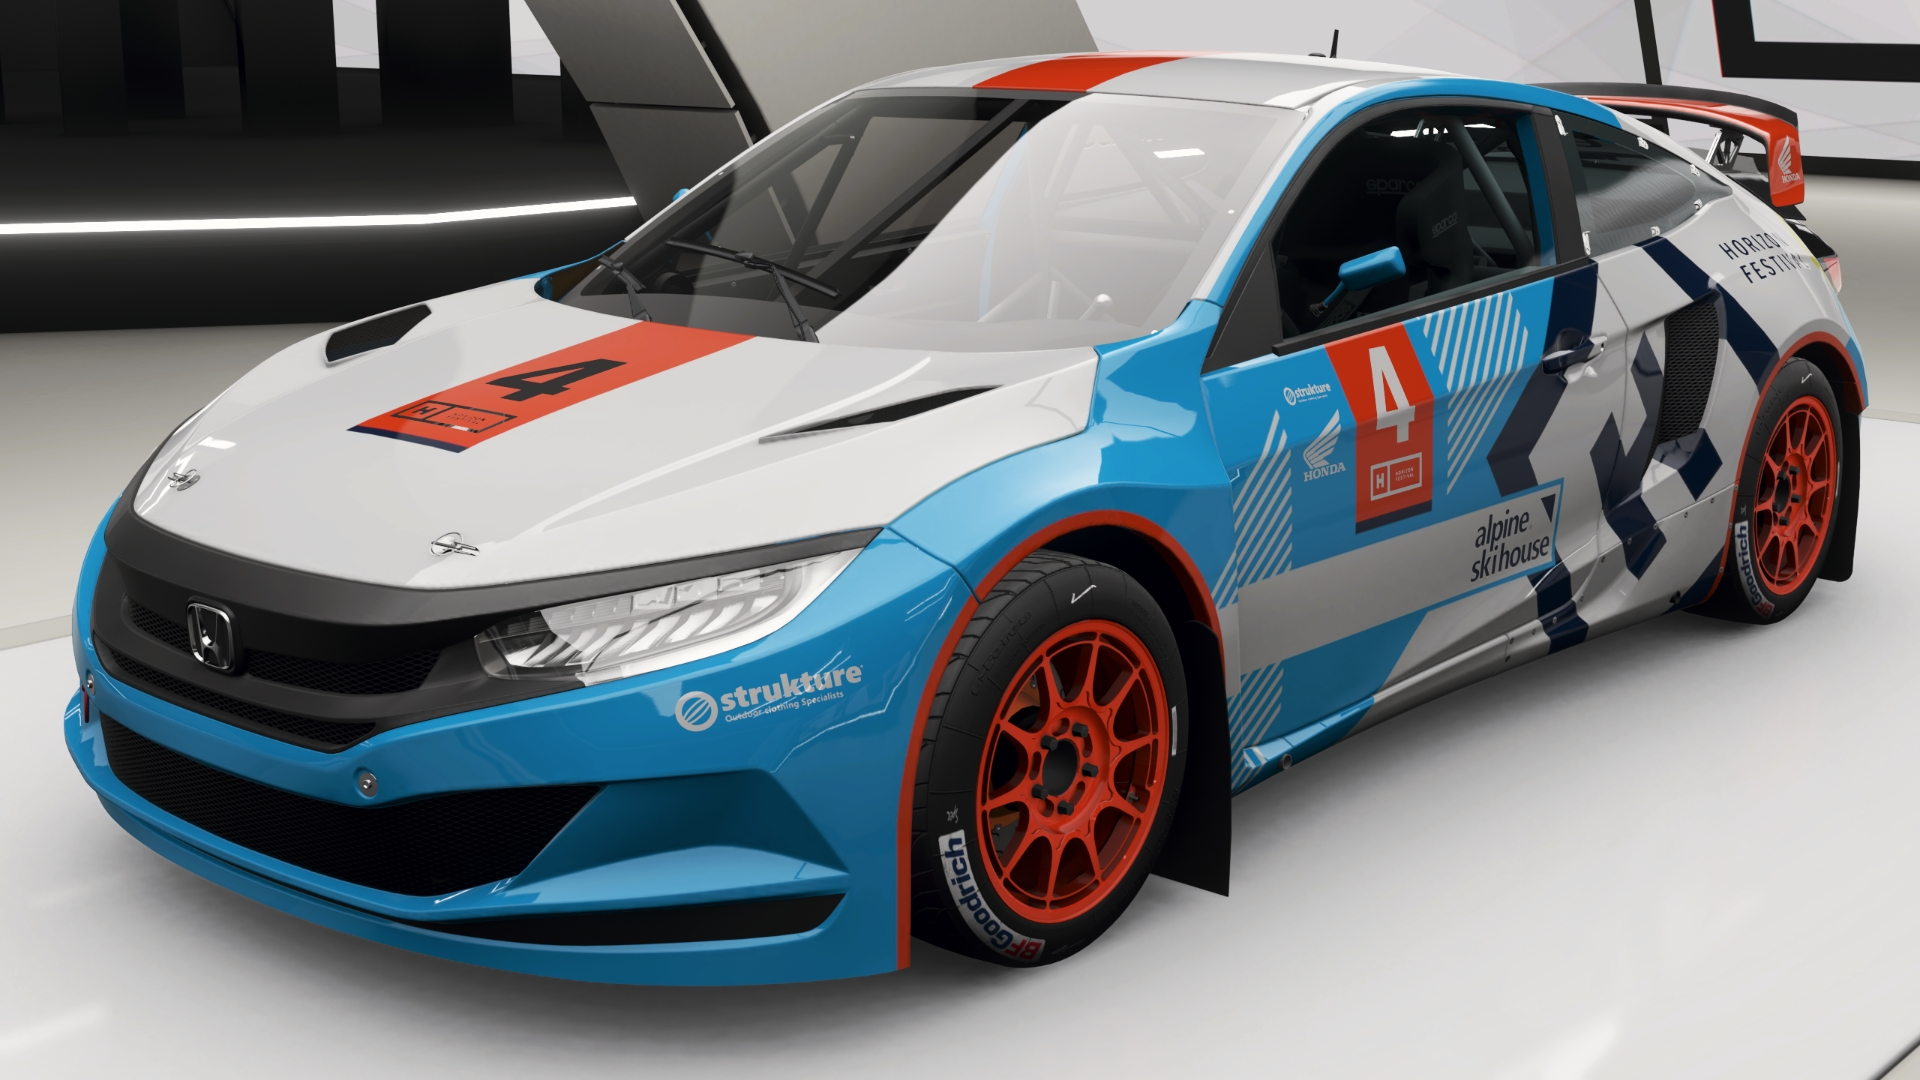 Honda Civic Coupe Grc Forza Motorsport Wiki Fandom Powered By Wikia